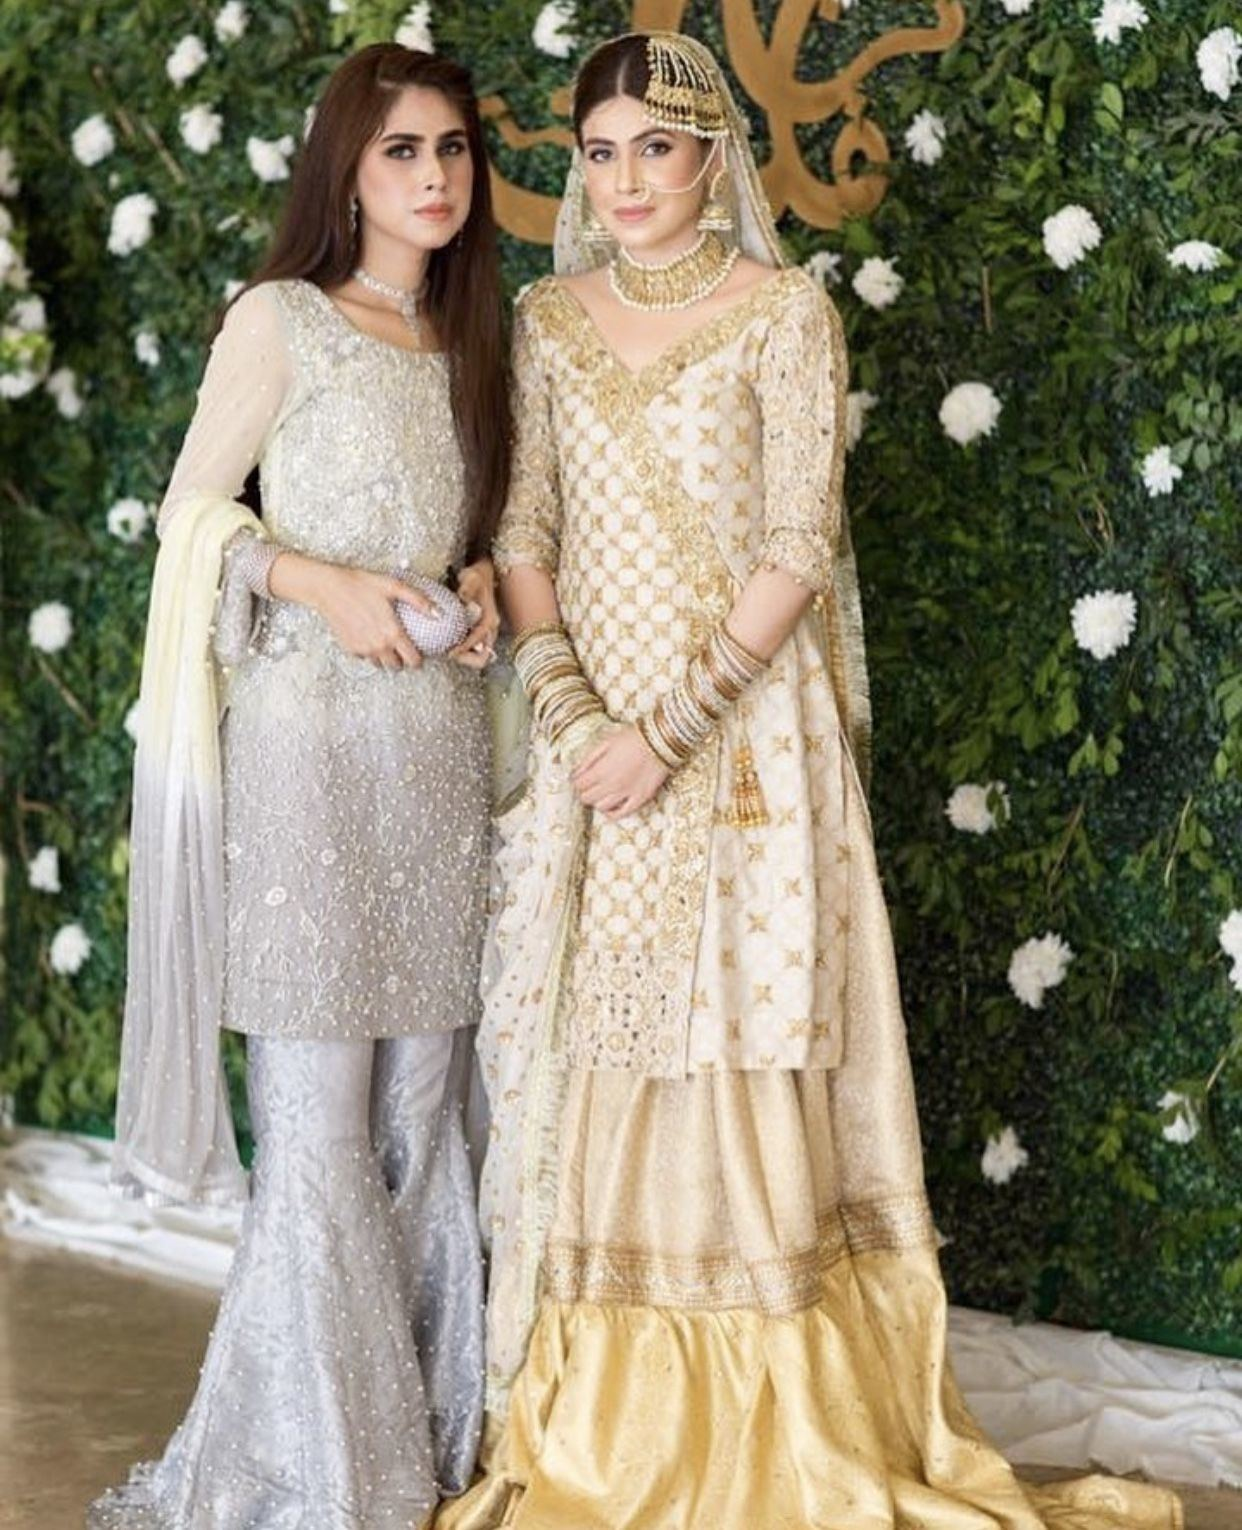 For me, white is just thee best color for any bride, desi or non